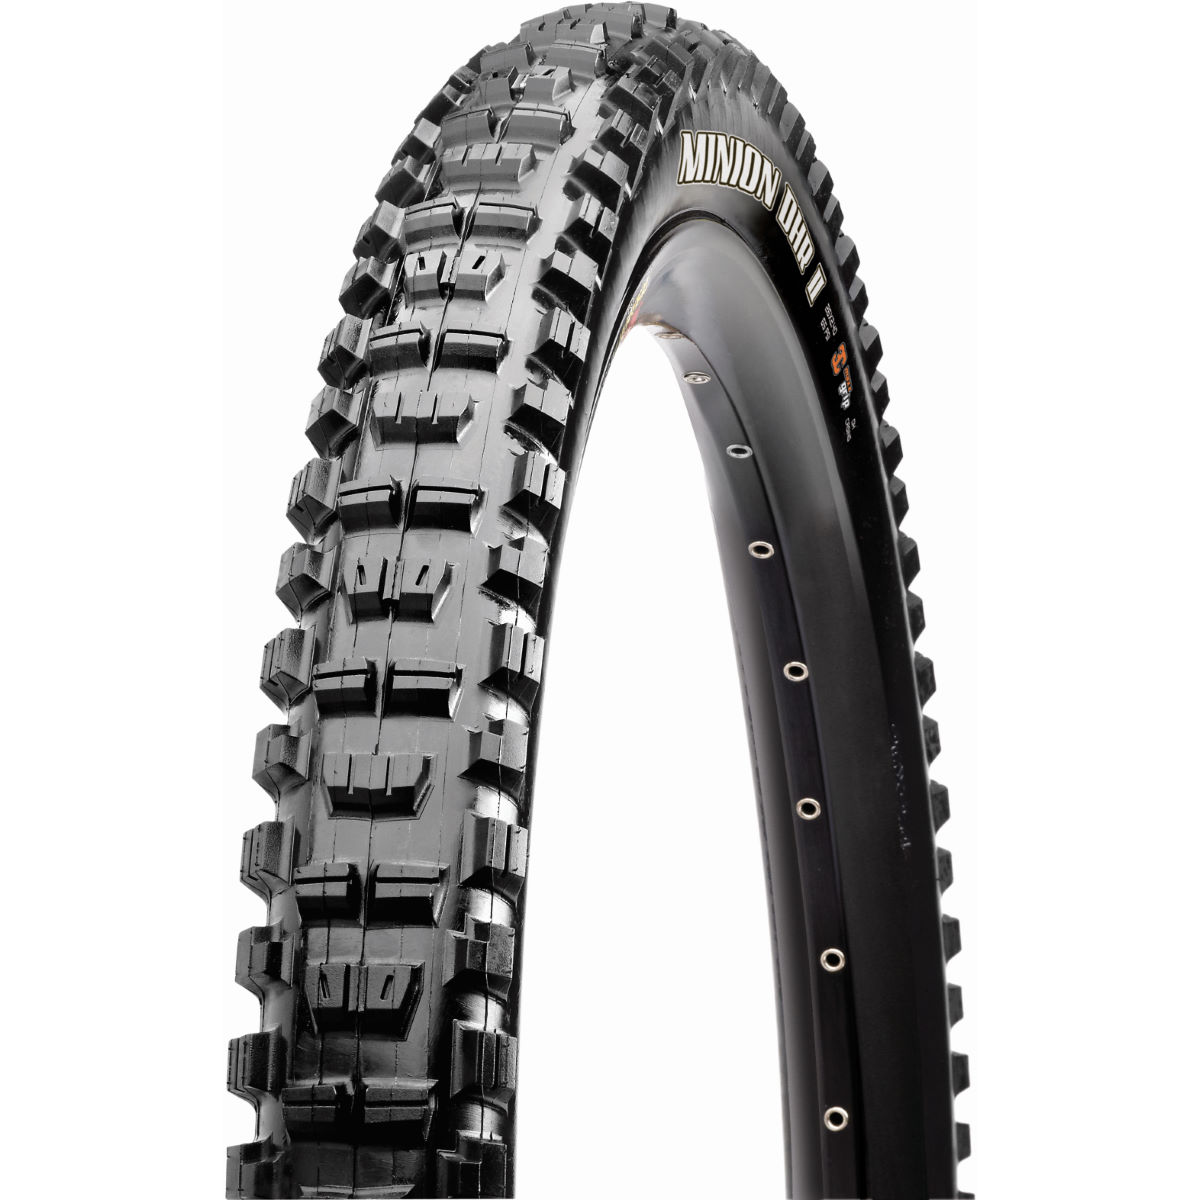 Maxxis Maxxis Minion DHR II Tyre - 3C - EXO - TR   Tyres